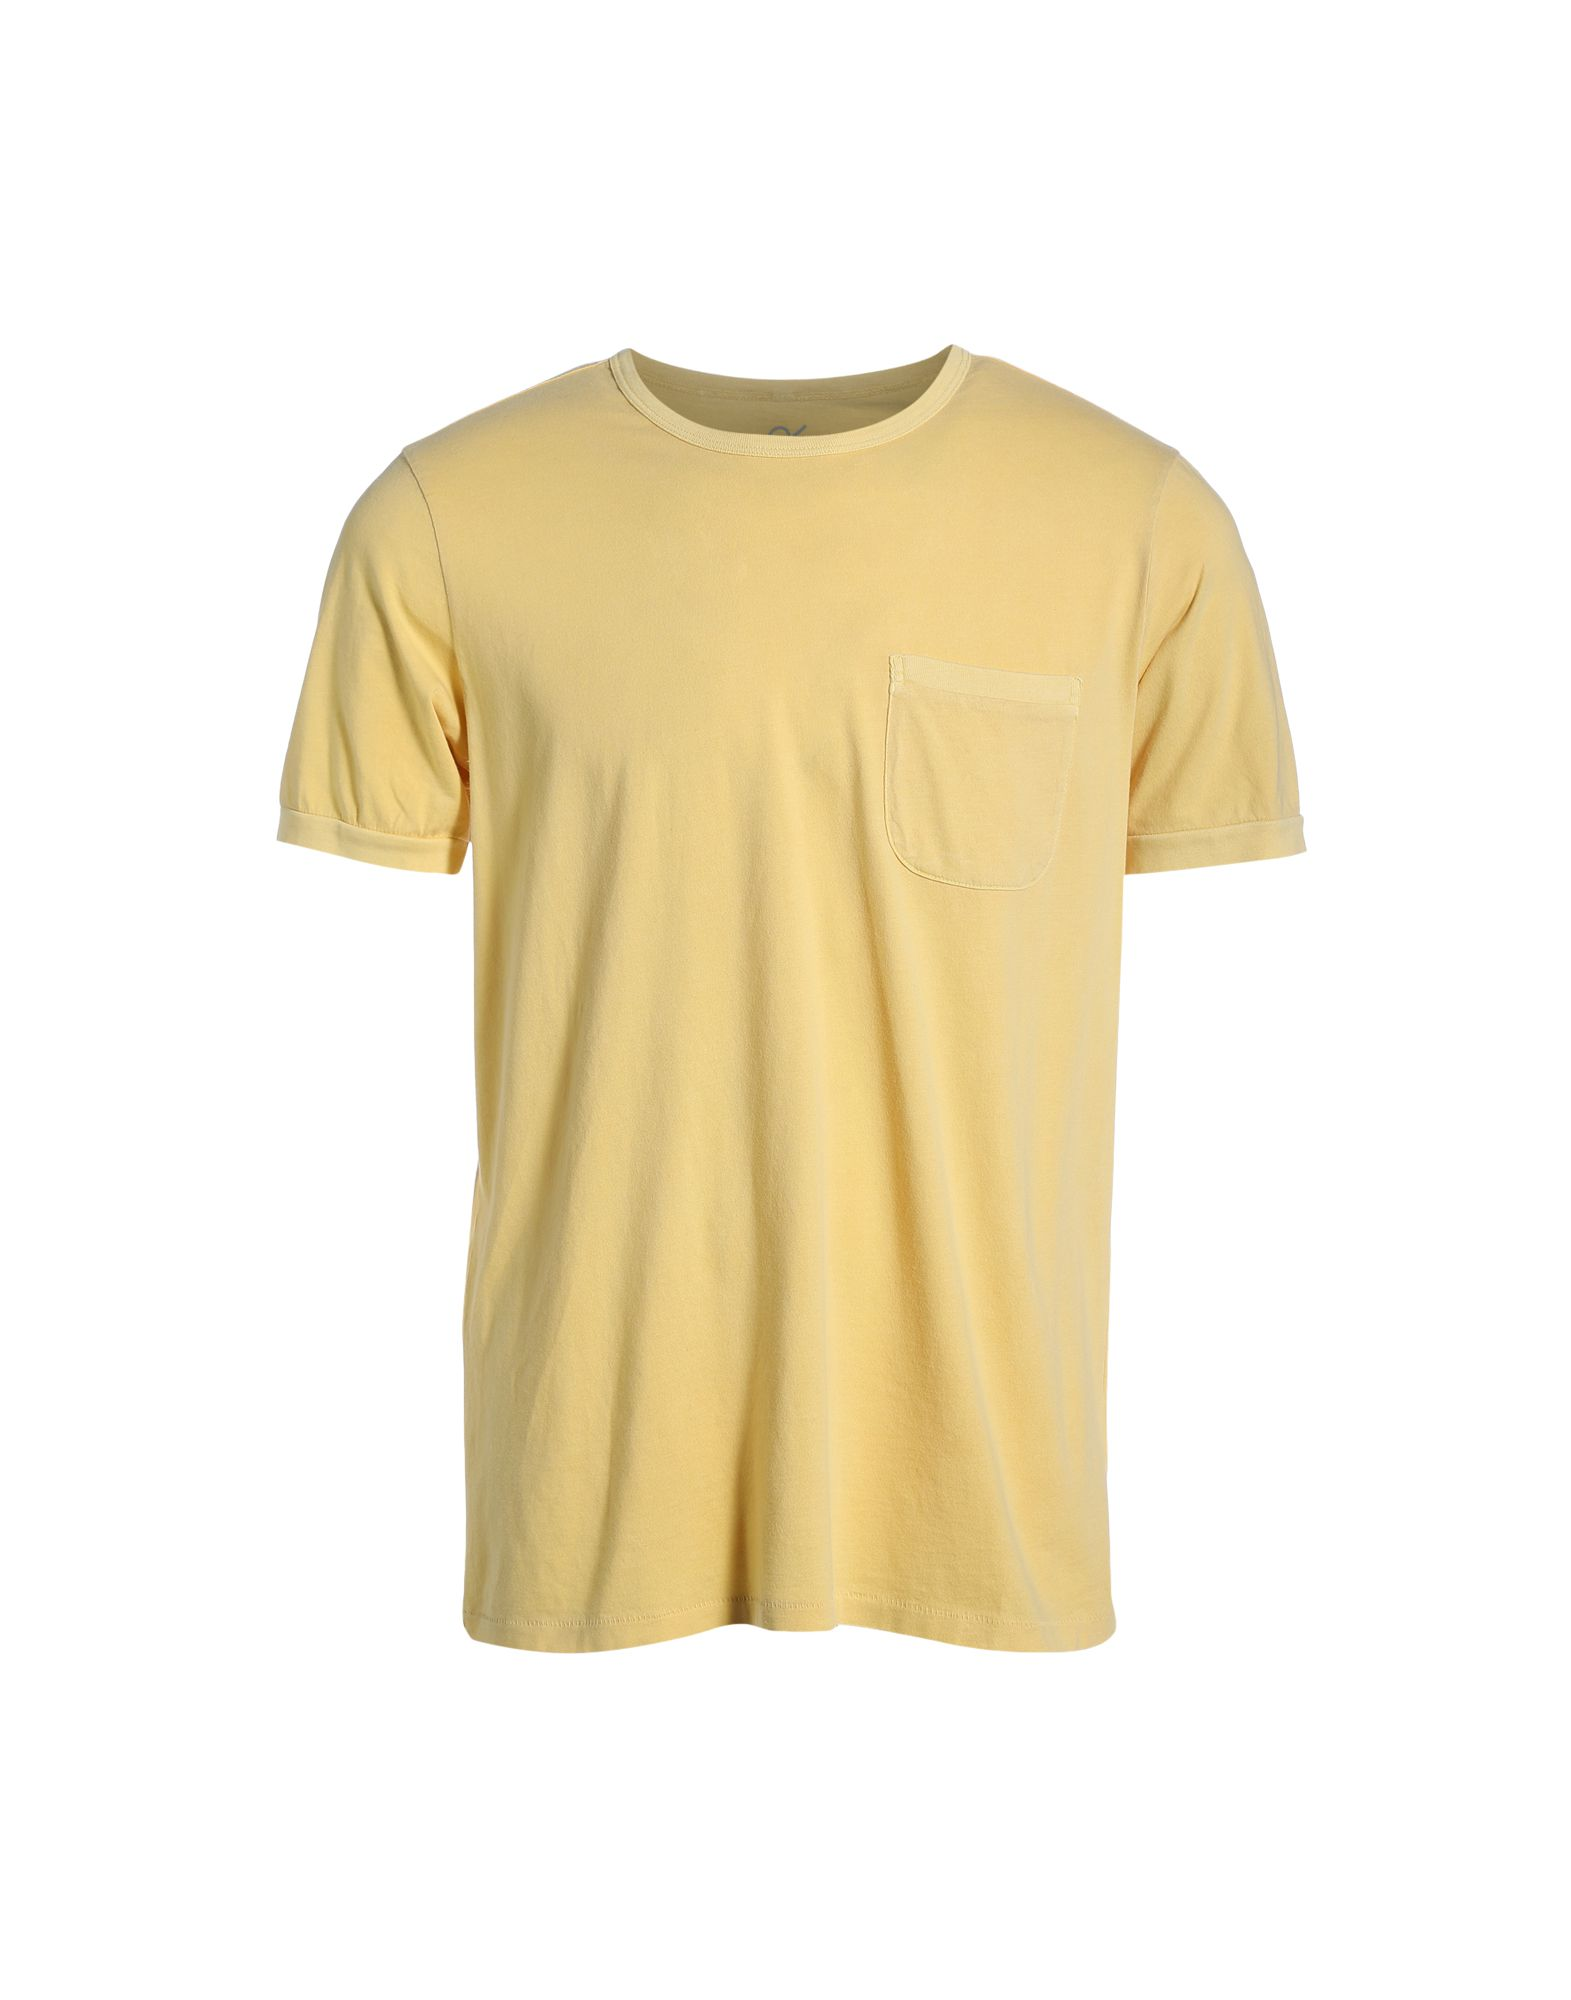 OUTERKNOWN T-Shirt in Yellow